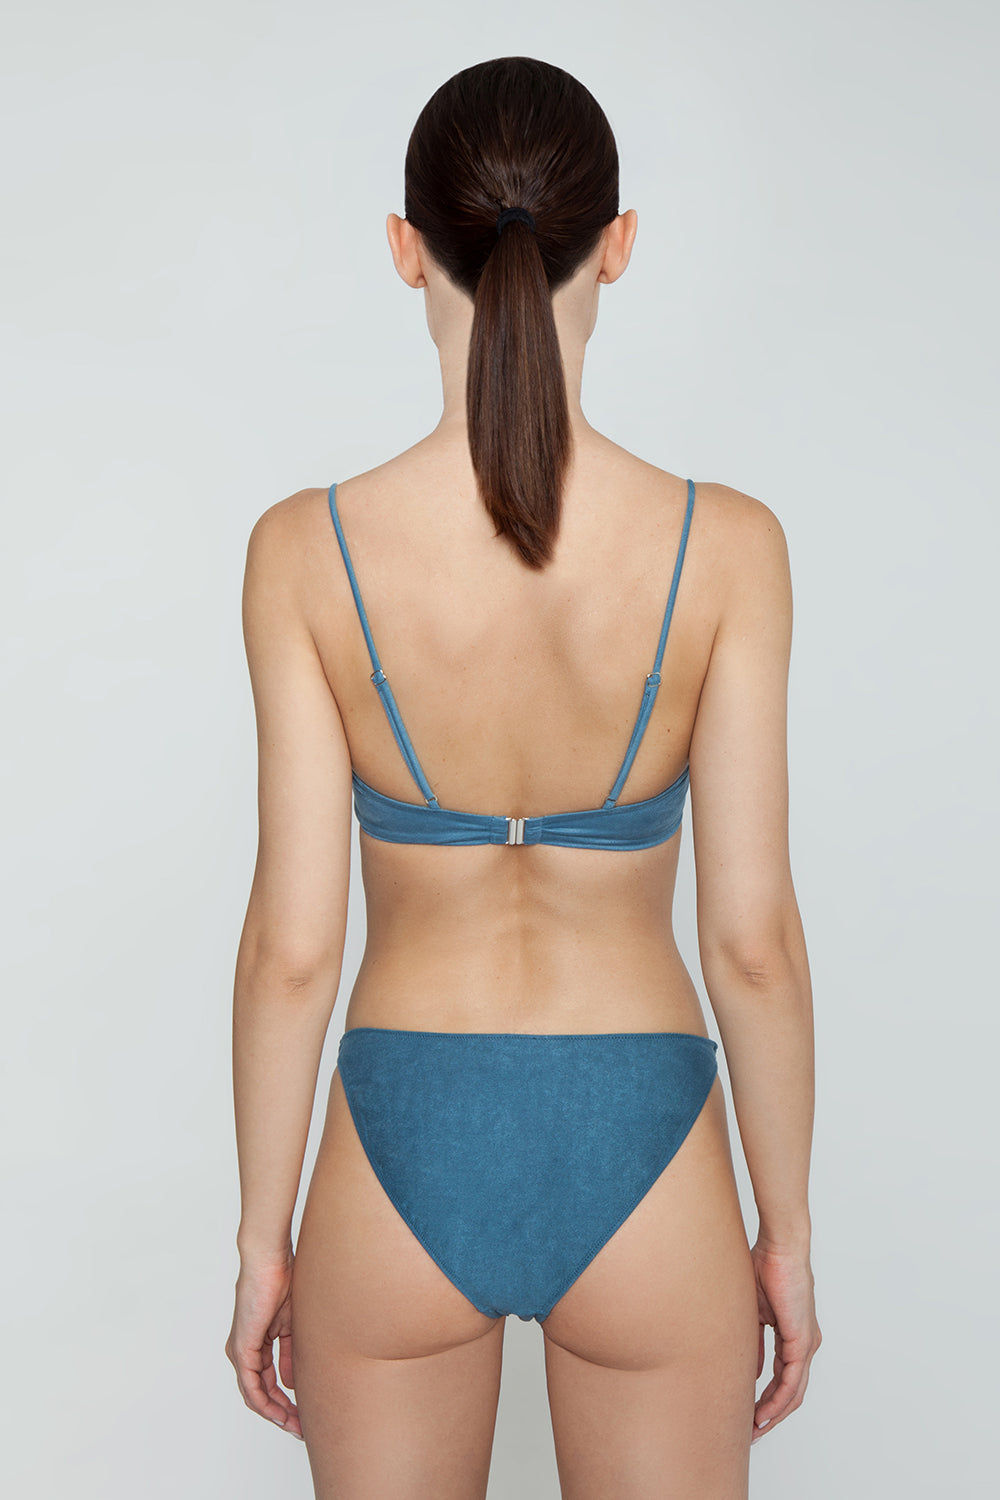 MONICA HANSEN BEACHWEAR Start Me Up Front Knot Bikini Top - Blue Bikini Top |  Blue| Monica Hansen Beachwear Start Me Up Front Knot Bikini Top - Blue. V neckline Thick front tie detail Adjustable shoulder straps Back clasp closure Double fabric on the inside instead of lining Italian fabric 85% Nylon 15% Elastane Manufactured in Italy Hand wash cold.  Dry Flat Back View